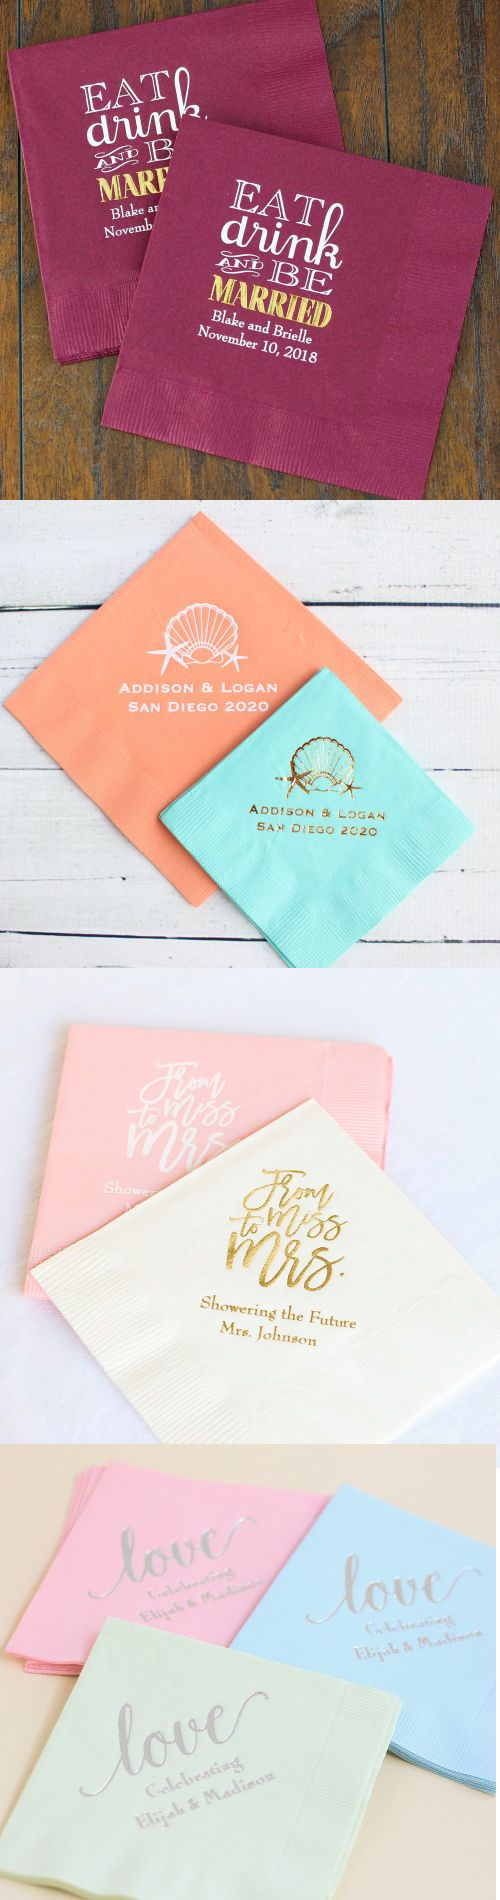 Awesome DIY Beach Wedding Decorations Ideas that are Personalized, simple, Themed & on a Budget for a Wedding, Ceremony Reception. Useful for Aisle, Arch Decoration for Romantic Boho, Bohemian, Rustic, Tropical, Vintage, Seaside theme :- Lanterns, Party Favors, Napkins, Tissue Paper, Milk Jar, Starfish Candle Light Holders, Favor Boxes,  Tea, Cork Coasters, Coastal Cake topper, Glass & Bear Mug, Bottle Openers, Hershey's Kisses, Matchboxes, Bottle Stopper, Mint rolls, Hand Lotion